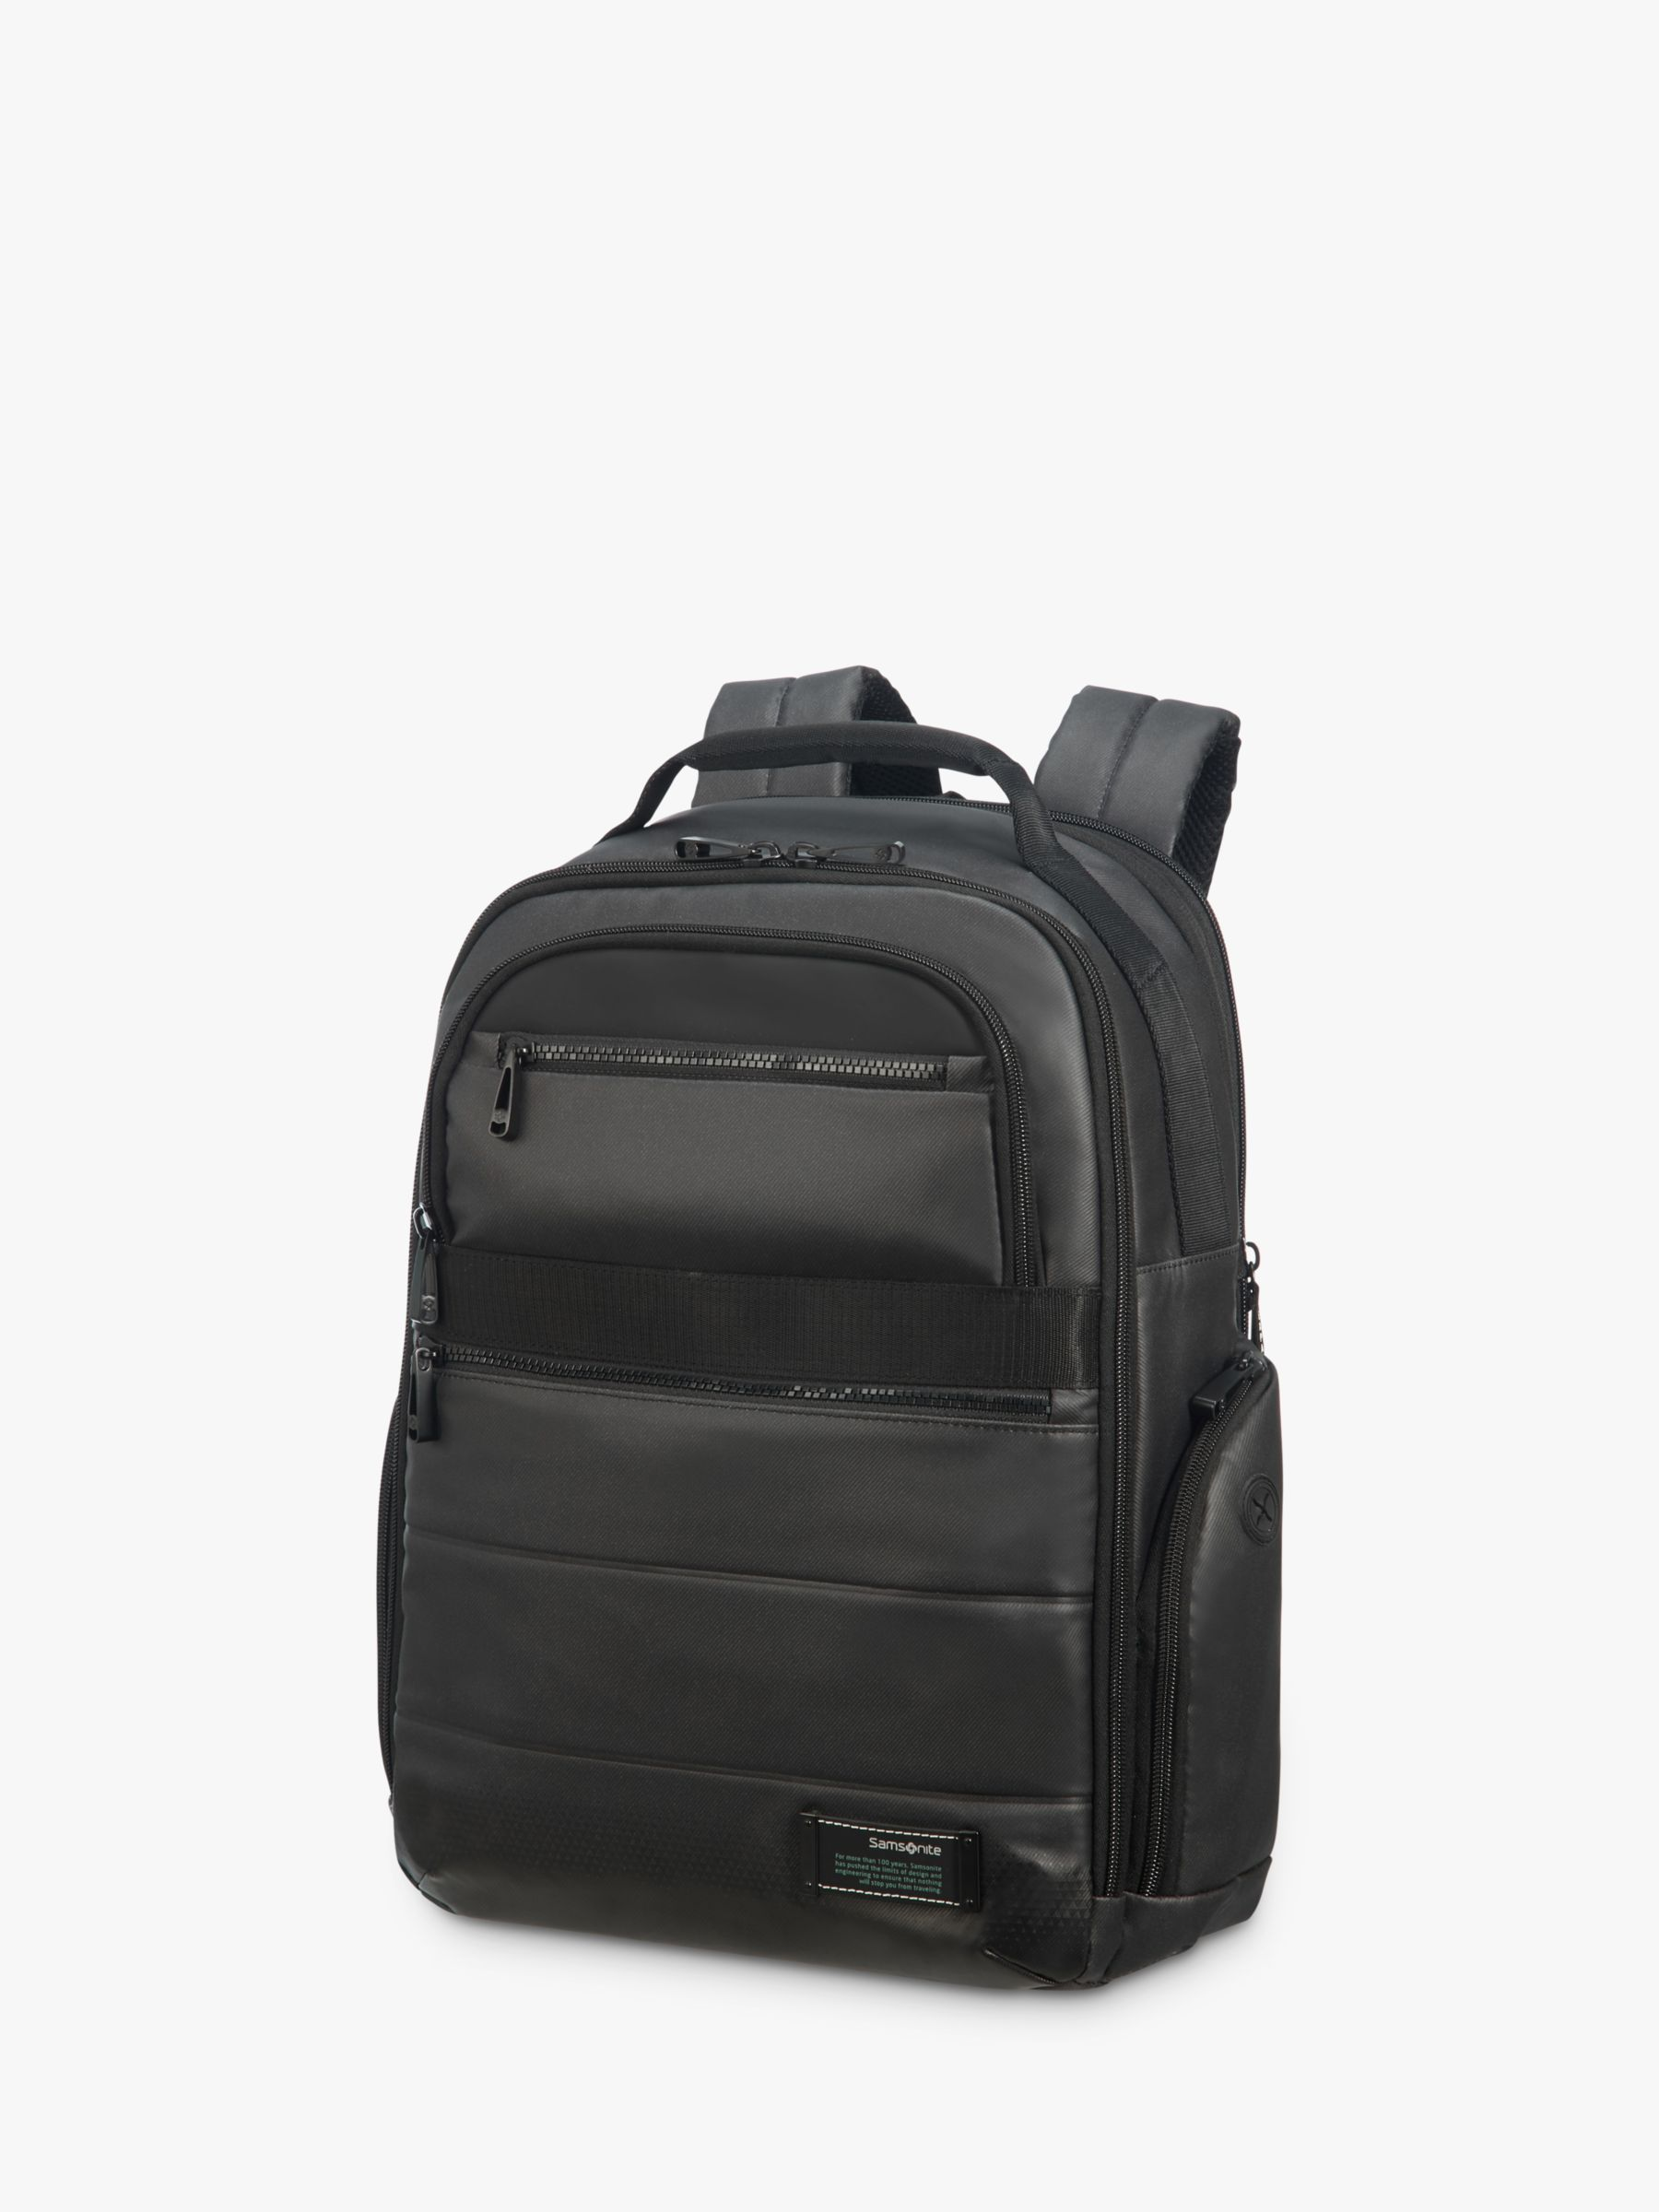 Samsonite Samsonite Cityvibe 2.0 15.6 Laptop Backpack